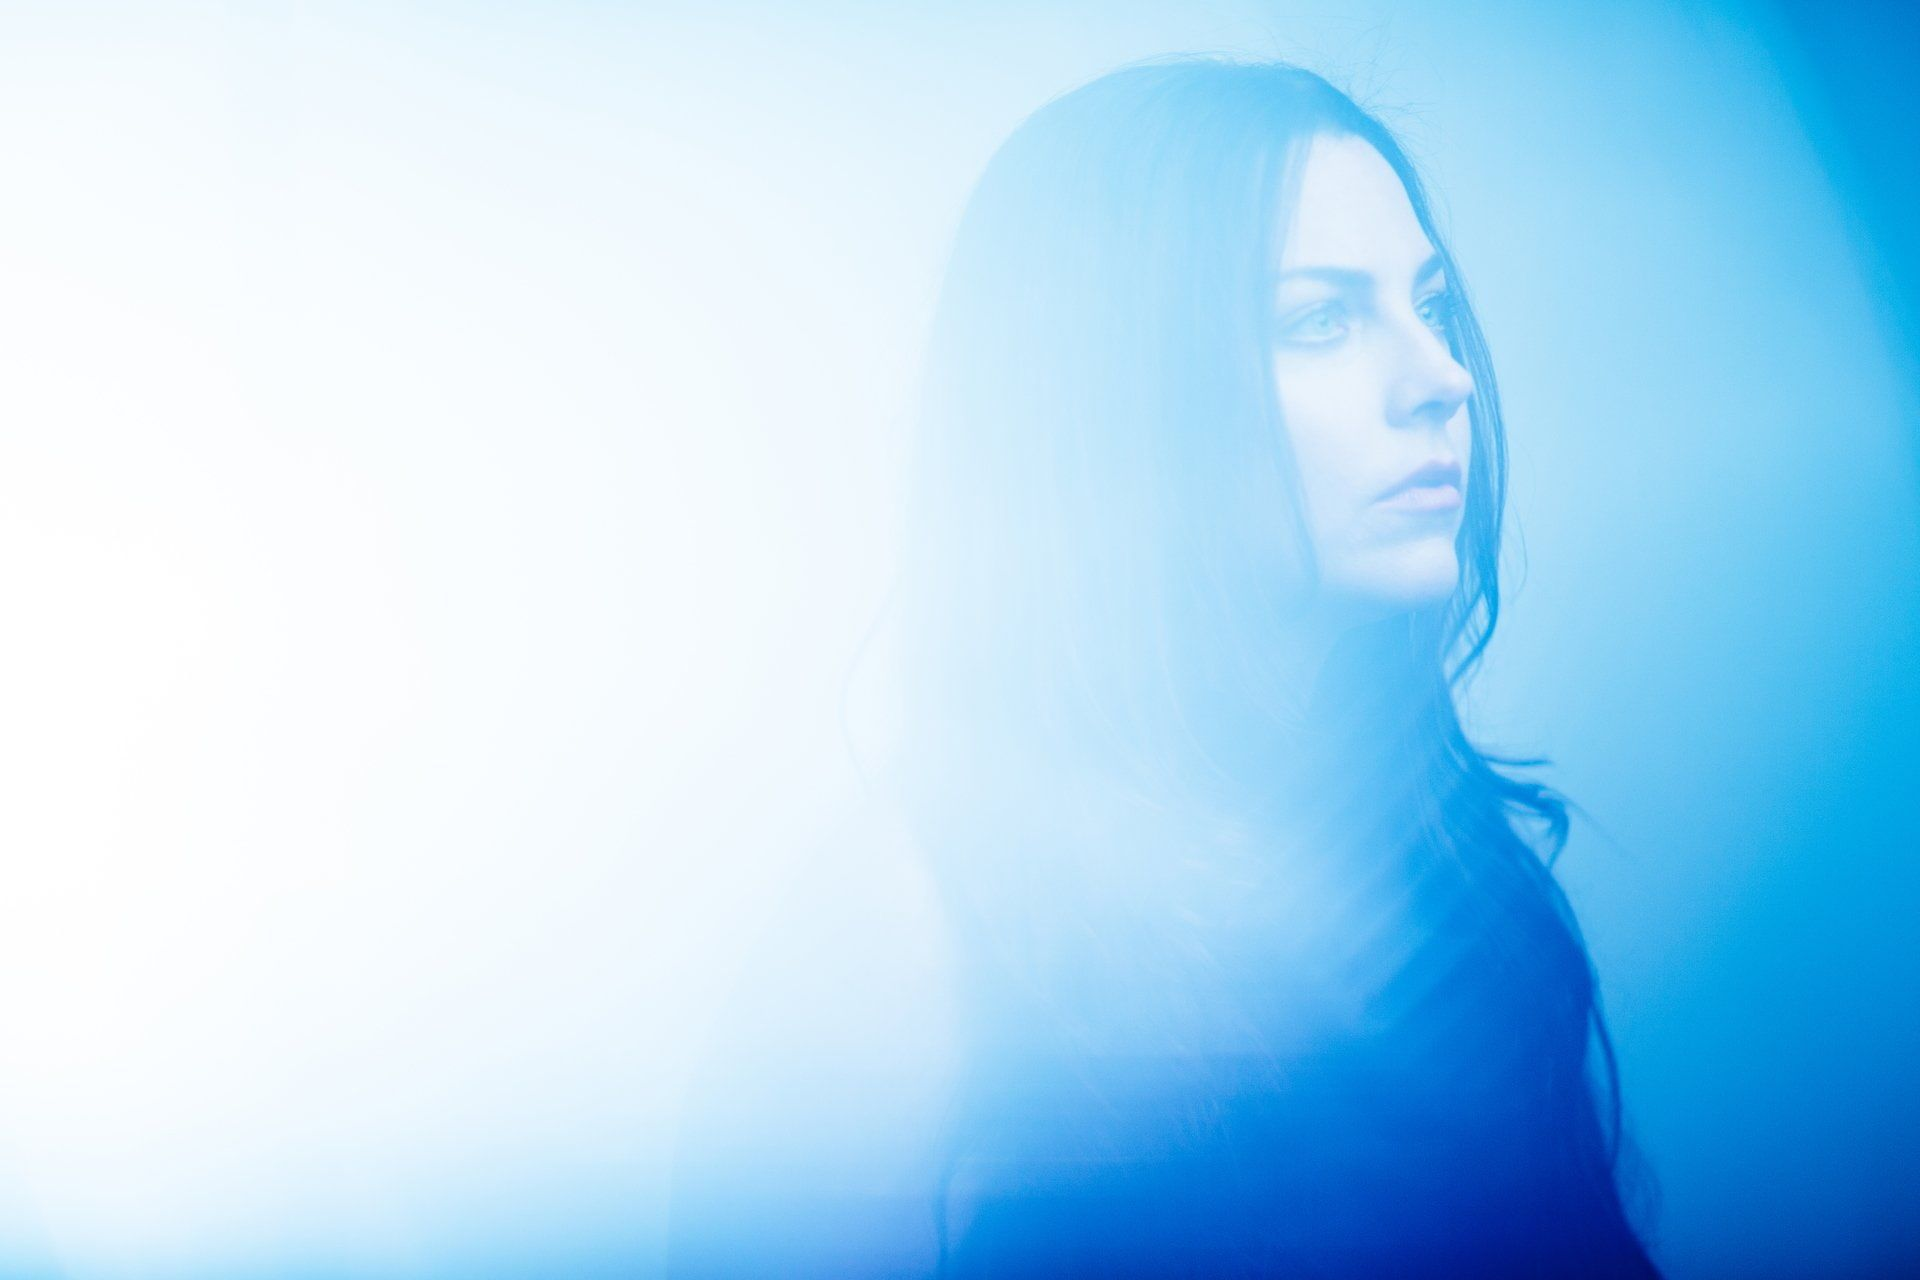 Singers Amy Lee Evanescence 1080p Wallpaper Hdwallpaper Desktop Amy Lee Amy Lee Evanescence Evanescence Amy lee singer hd wallpapers